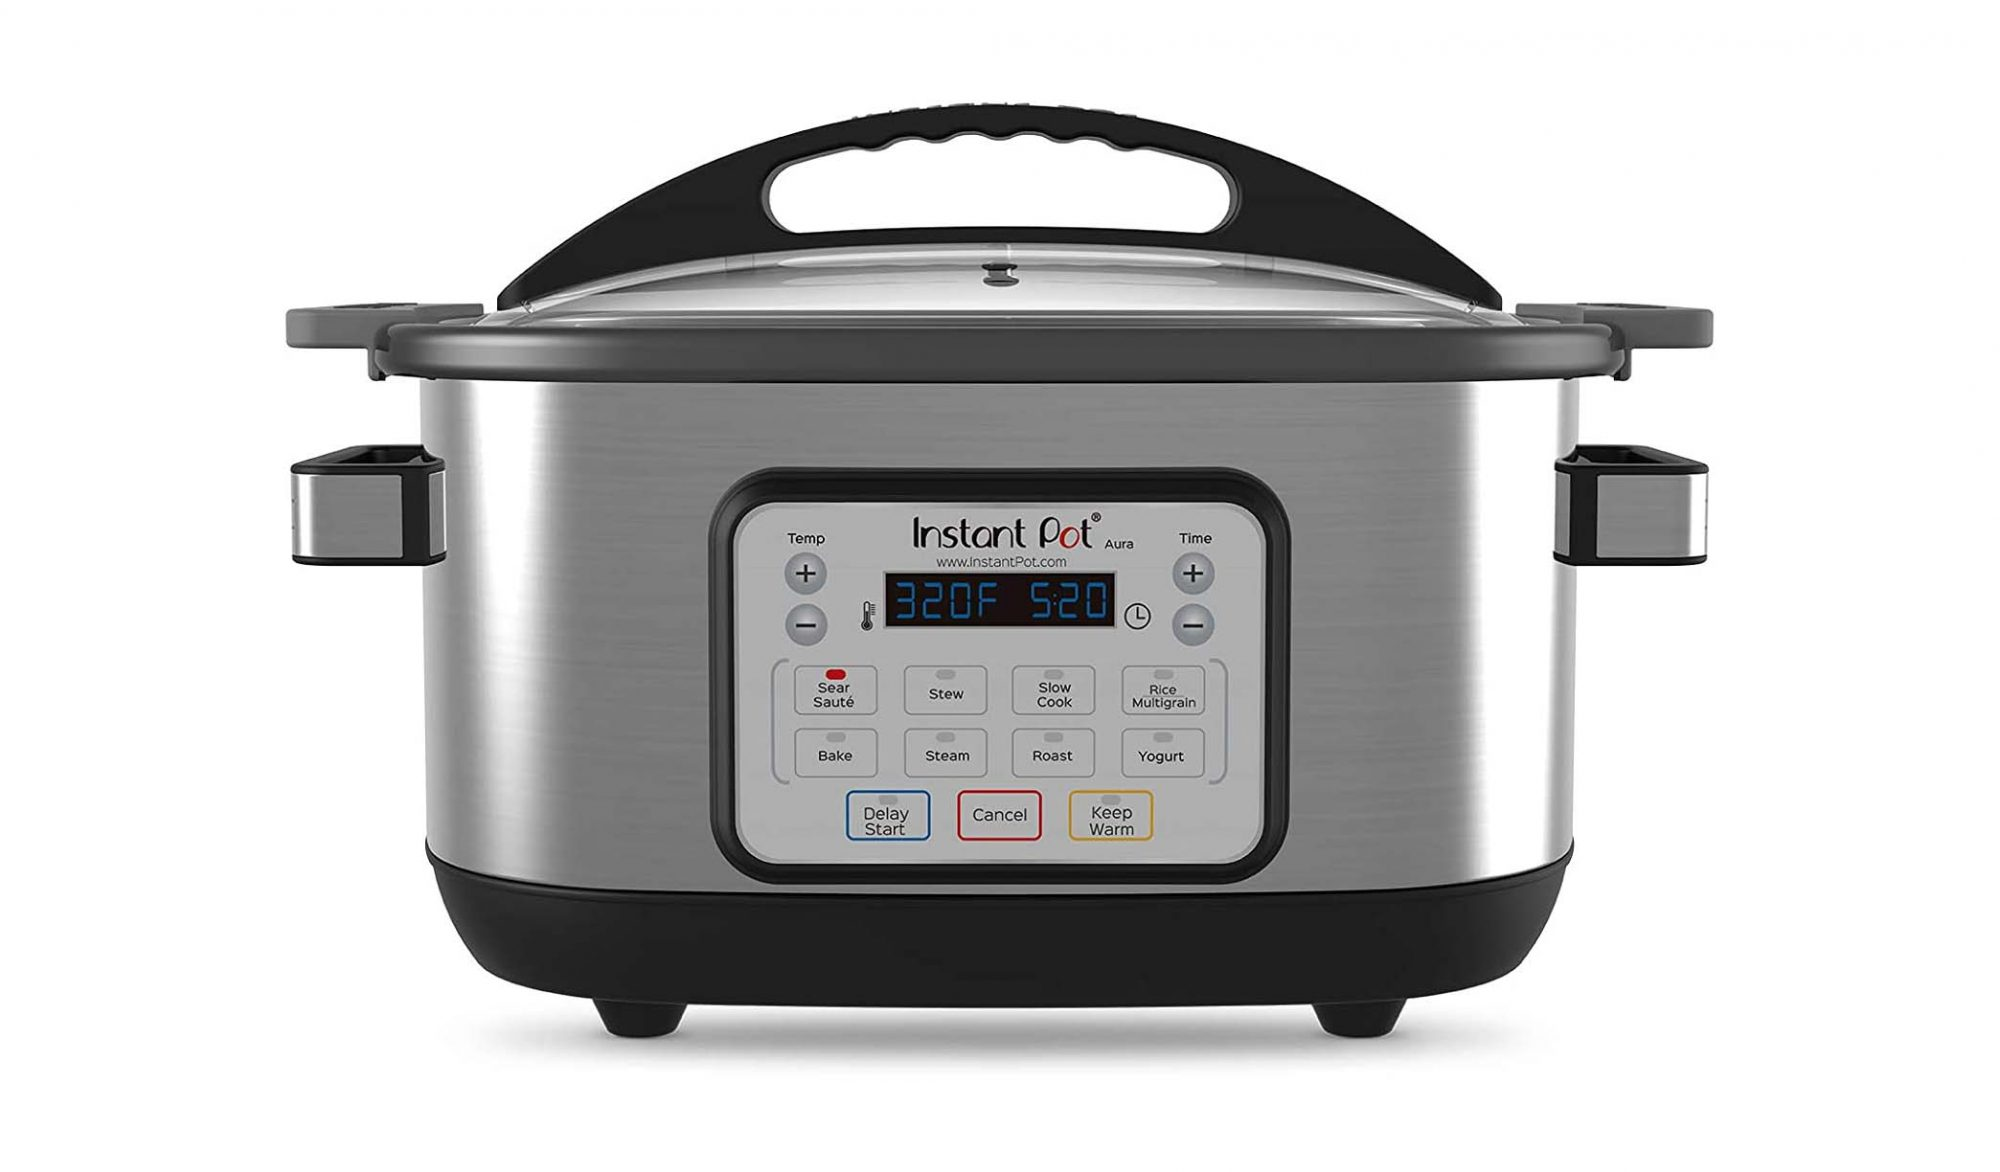 Instant Pot Aura 10-in-1 Multi-Use Slow Cooker